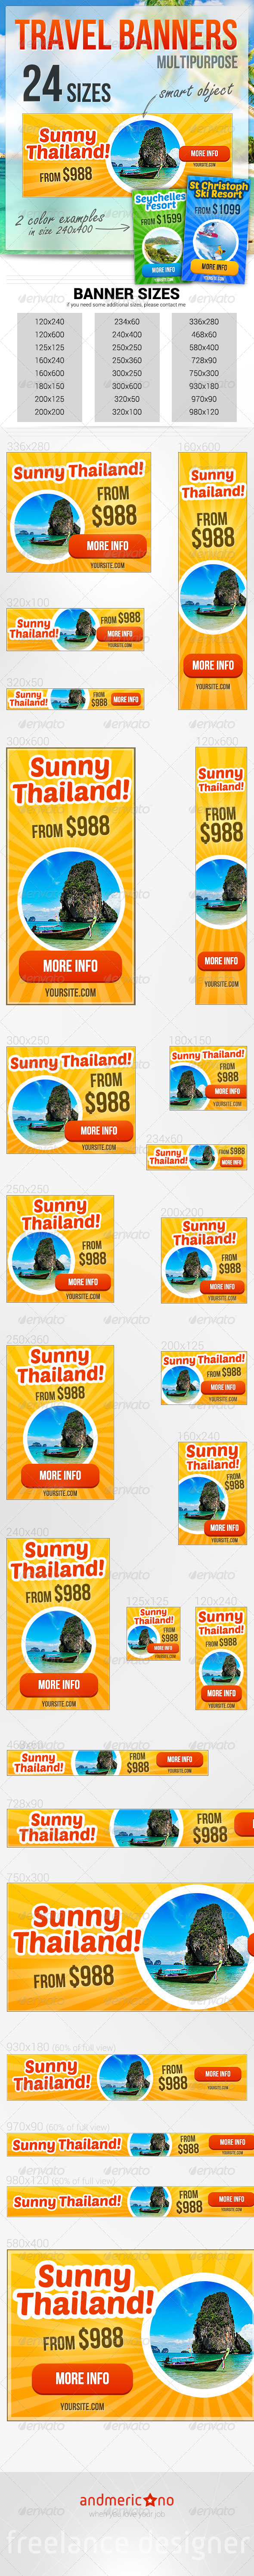 Travel & Holidays Banners - Banners & Ads Web Elements